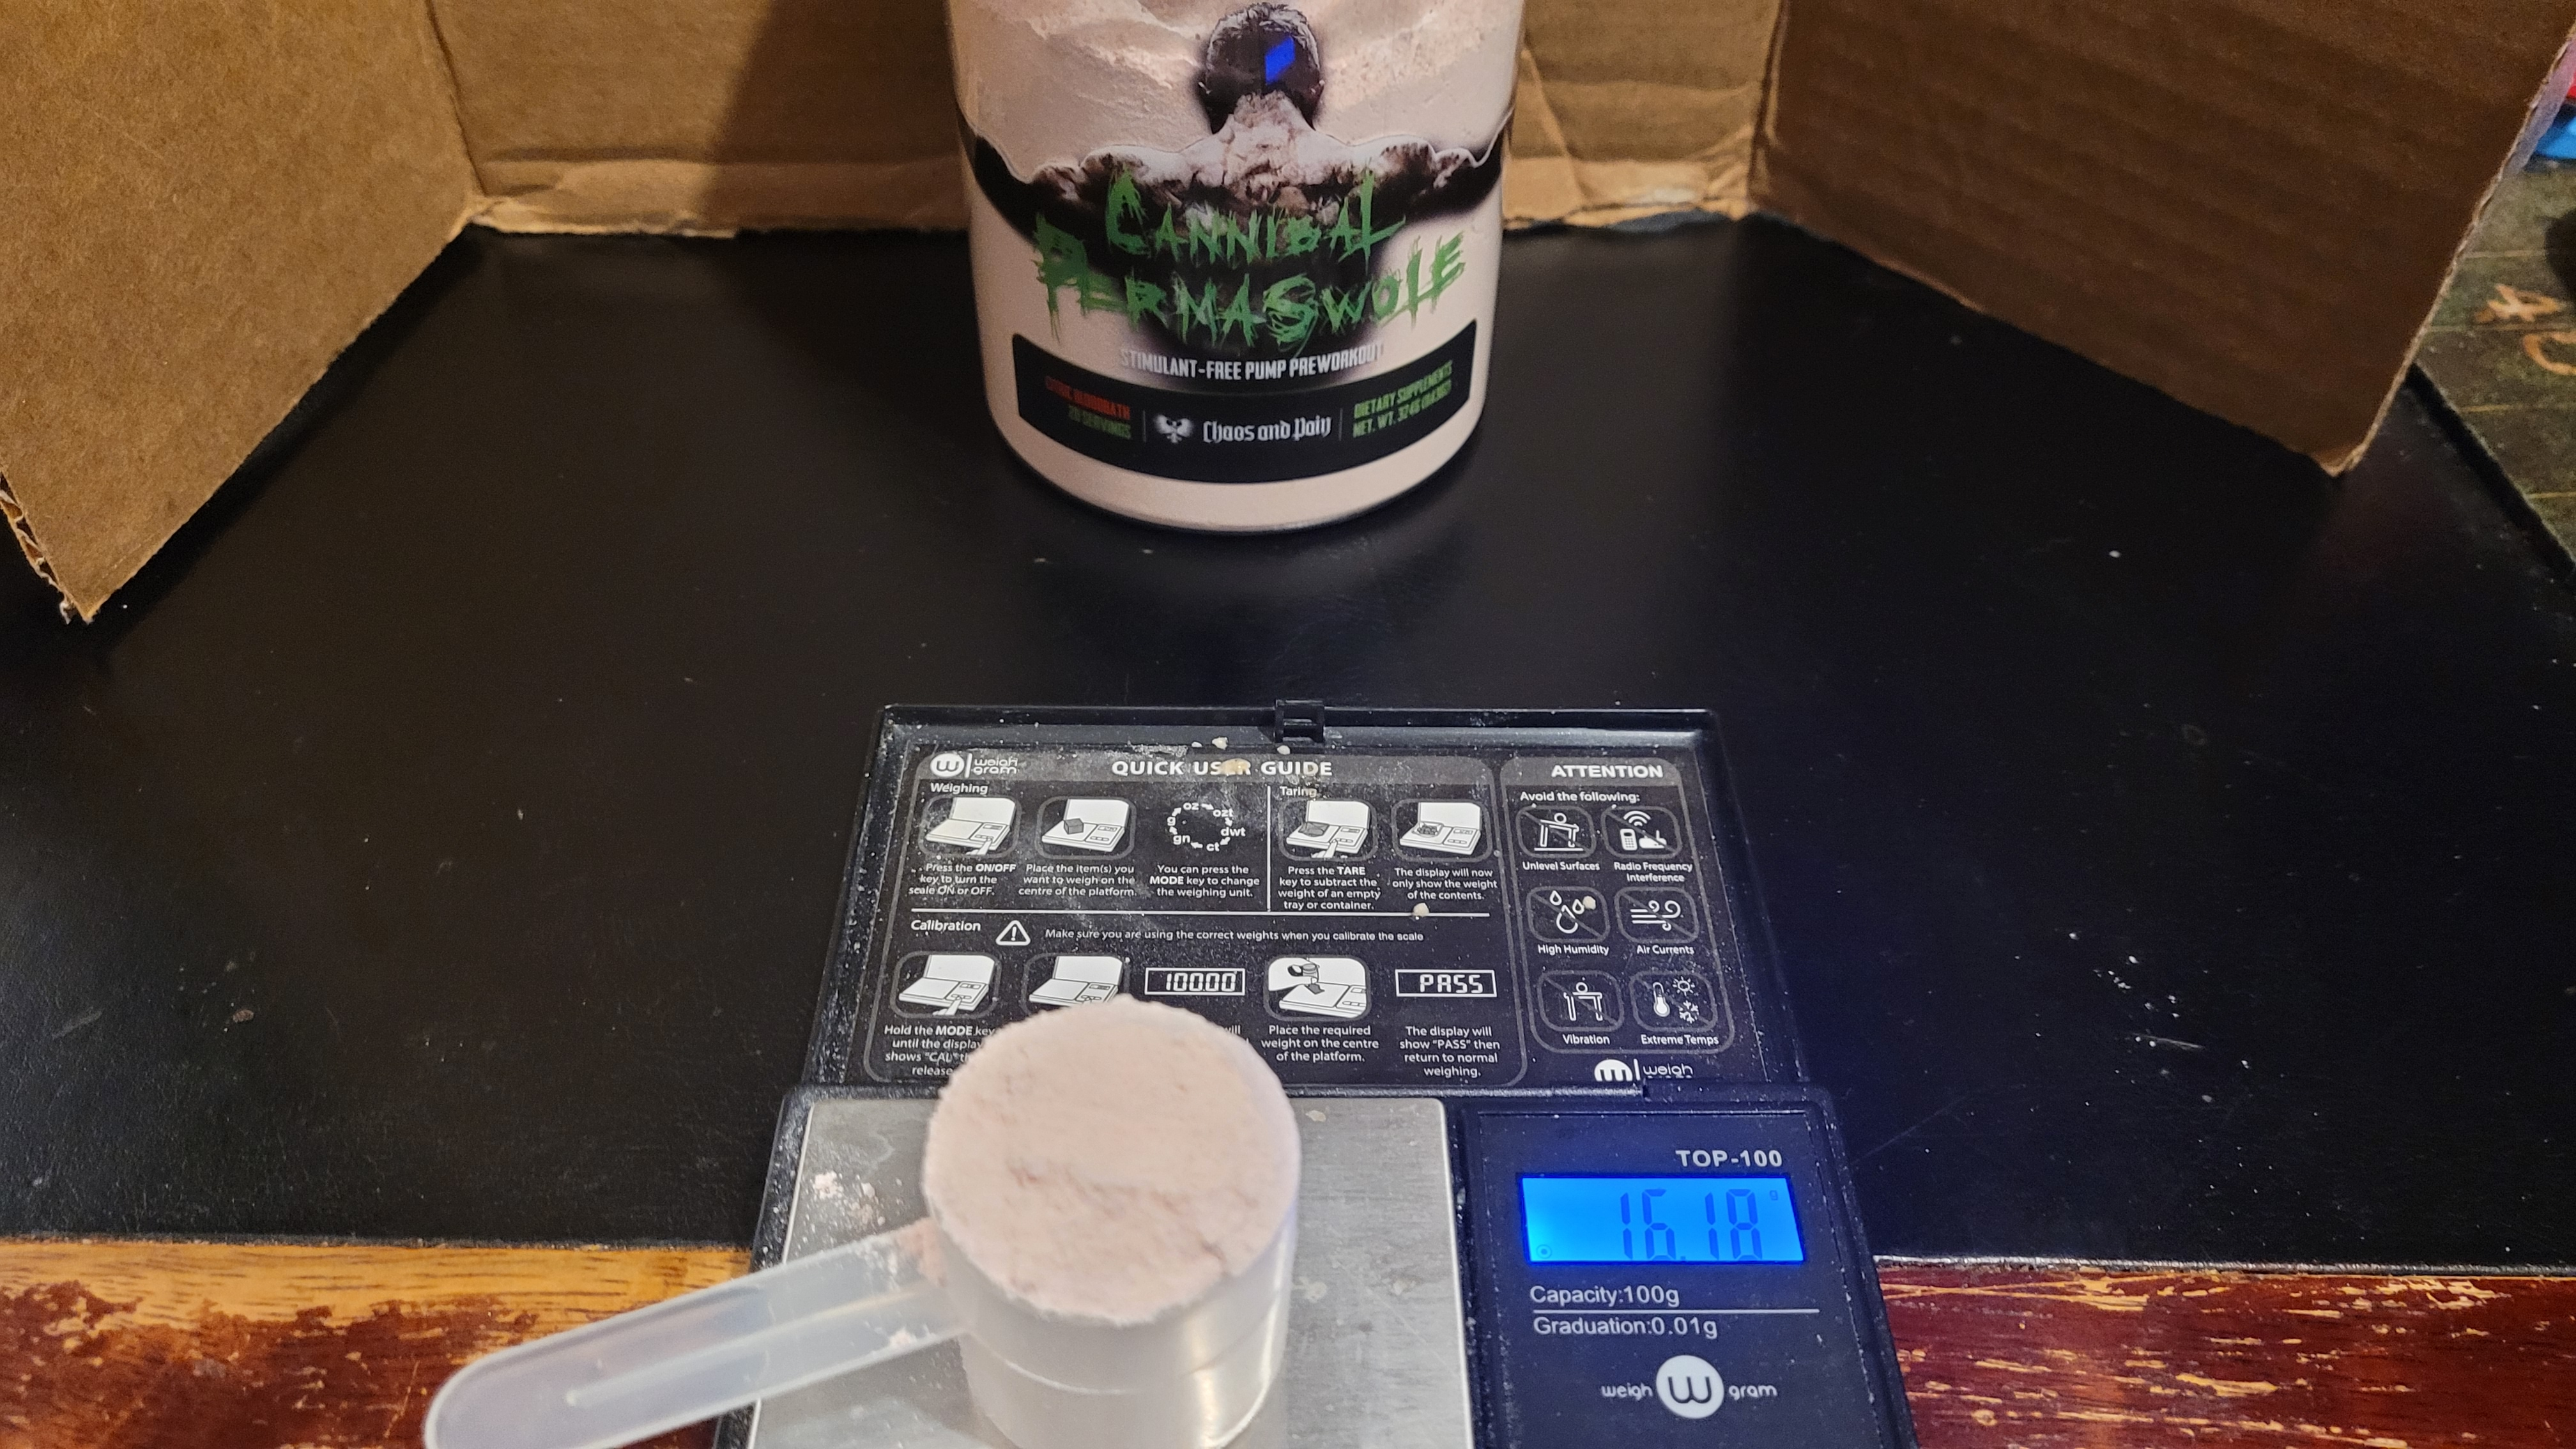 Cannibal Permaswole Scoop Size